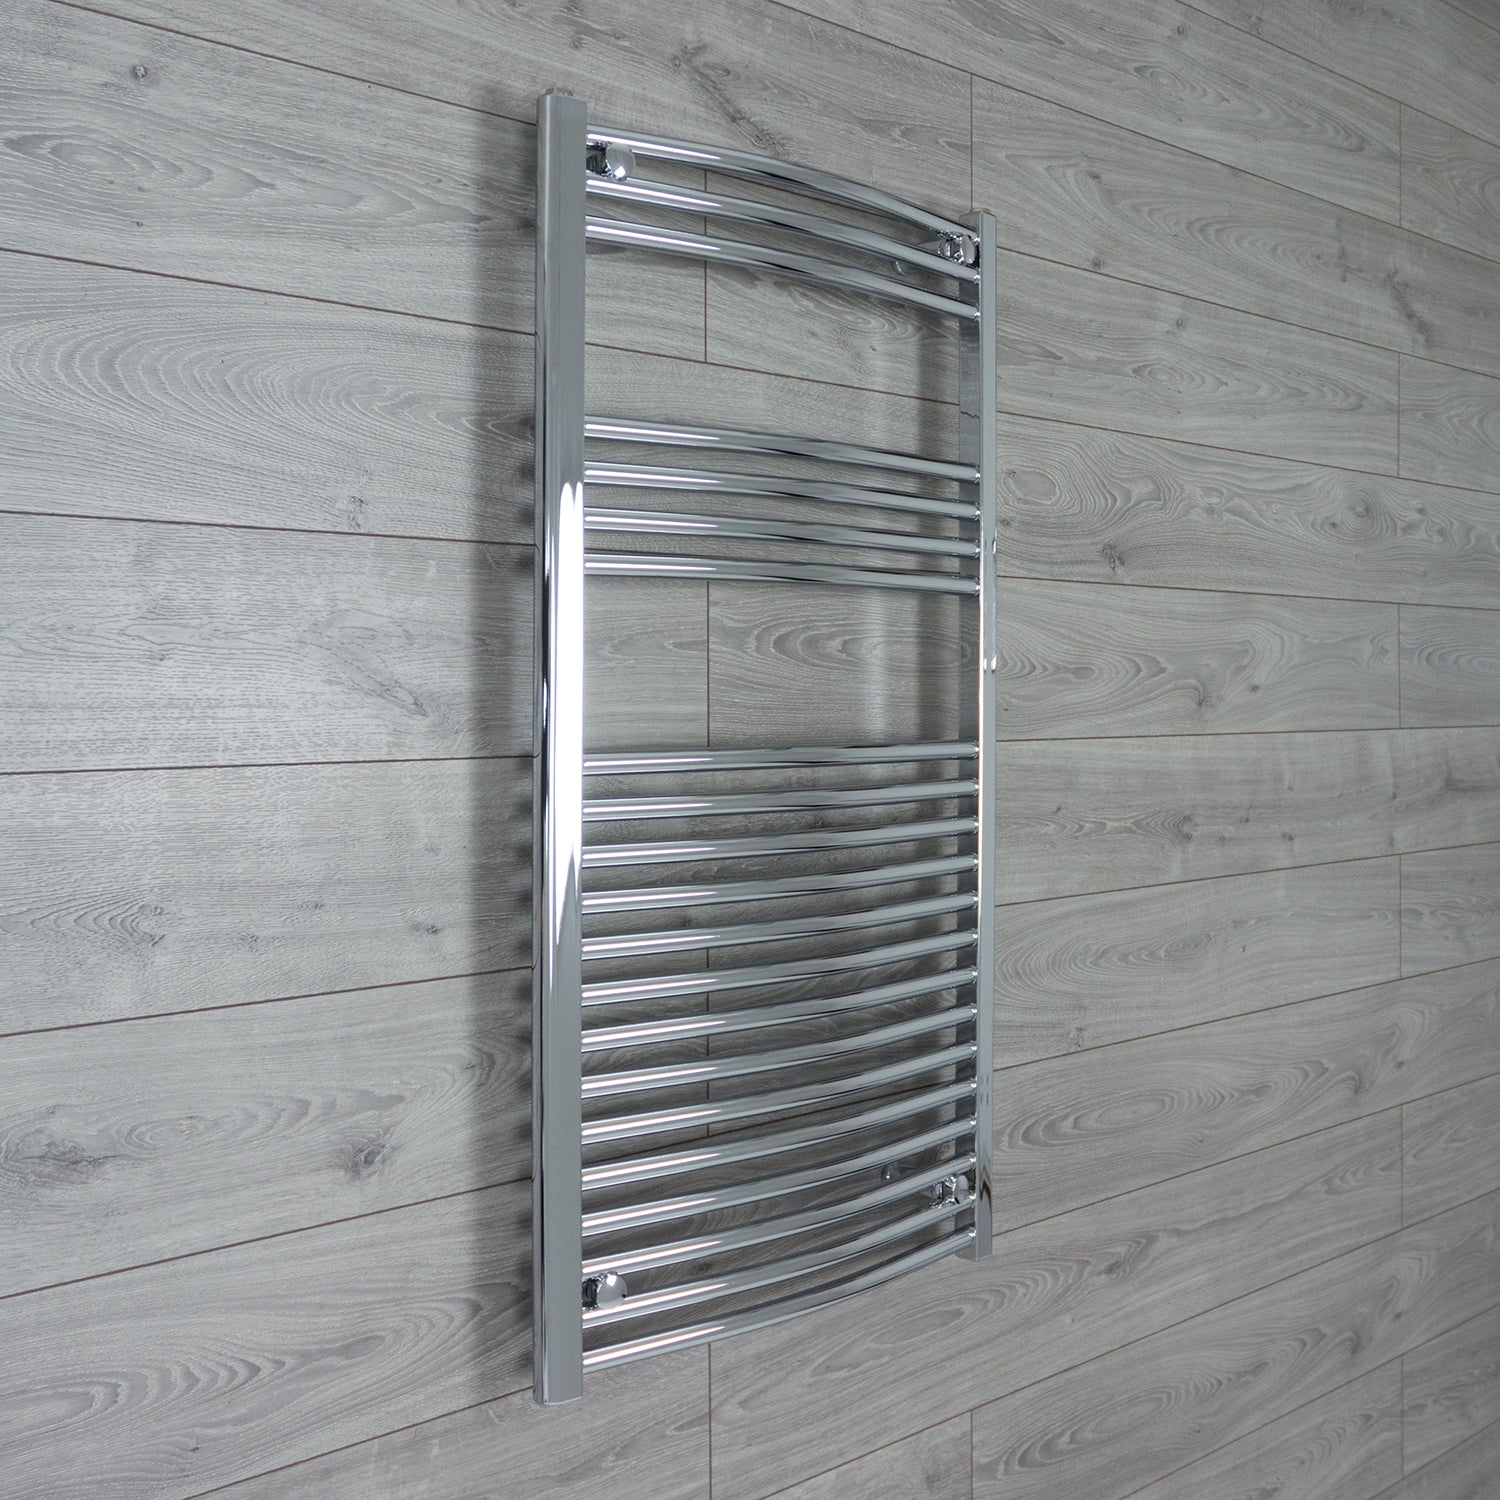 600mm Wide 1100mm High Curved Chrome Heated Towel Rail Radiator HTR,Towel Rail Only